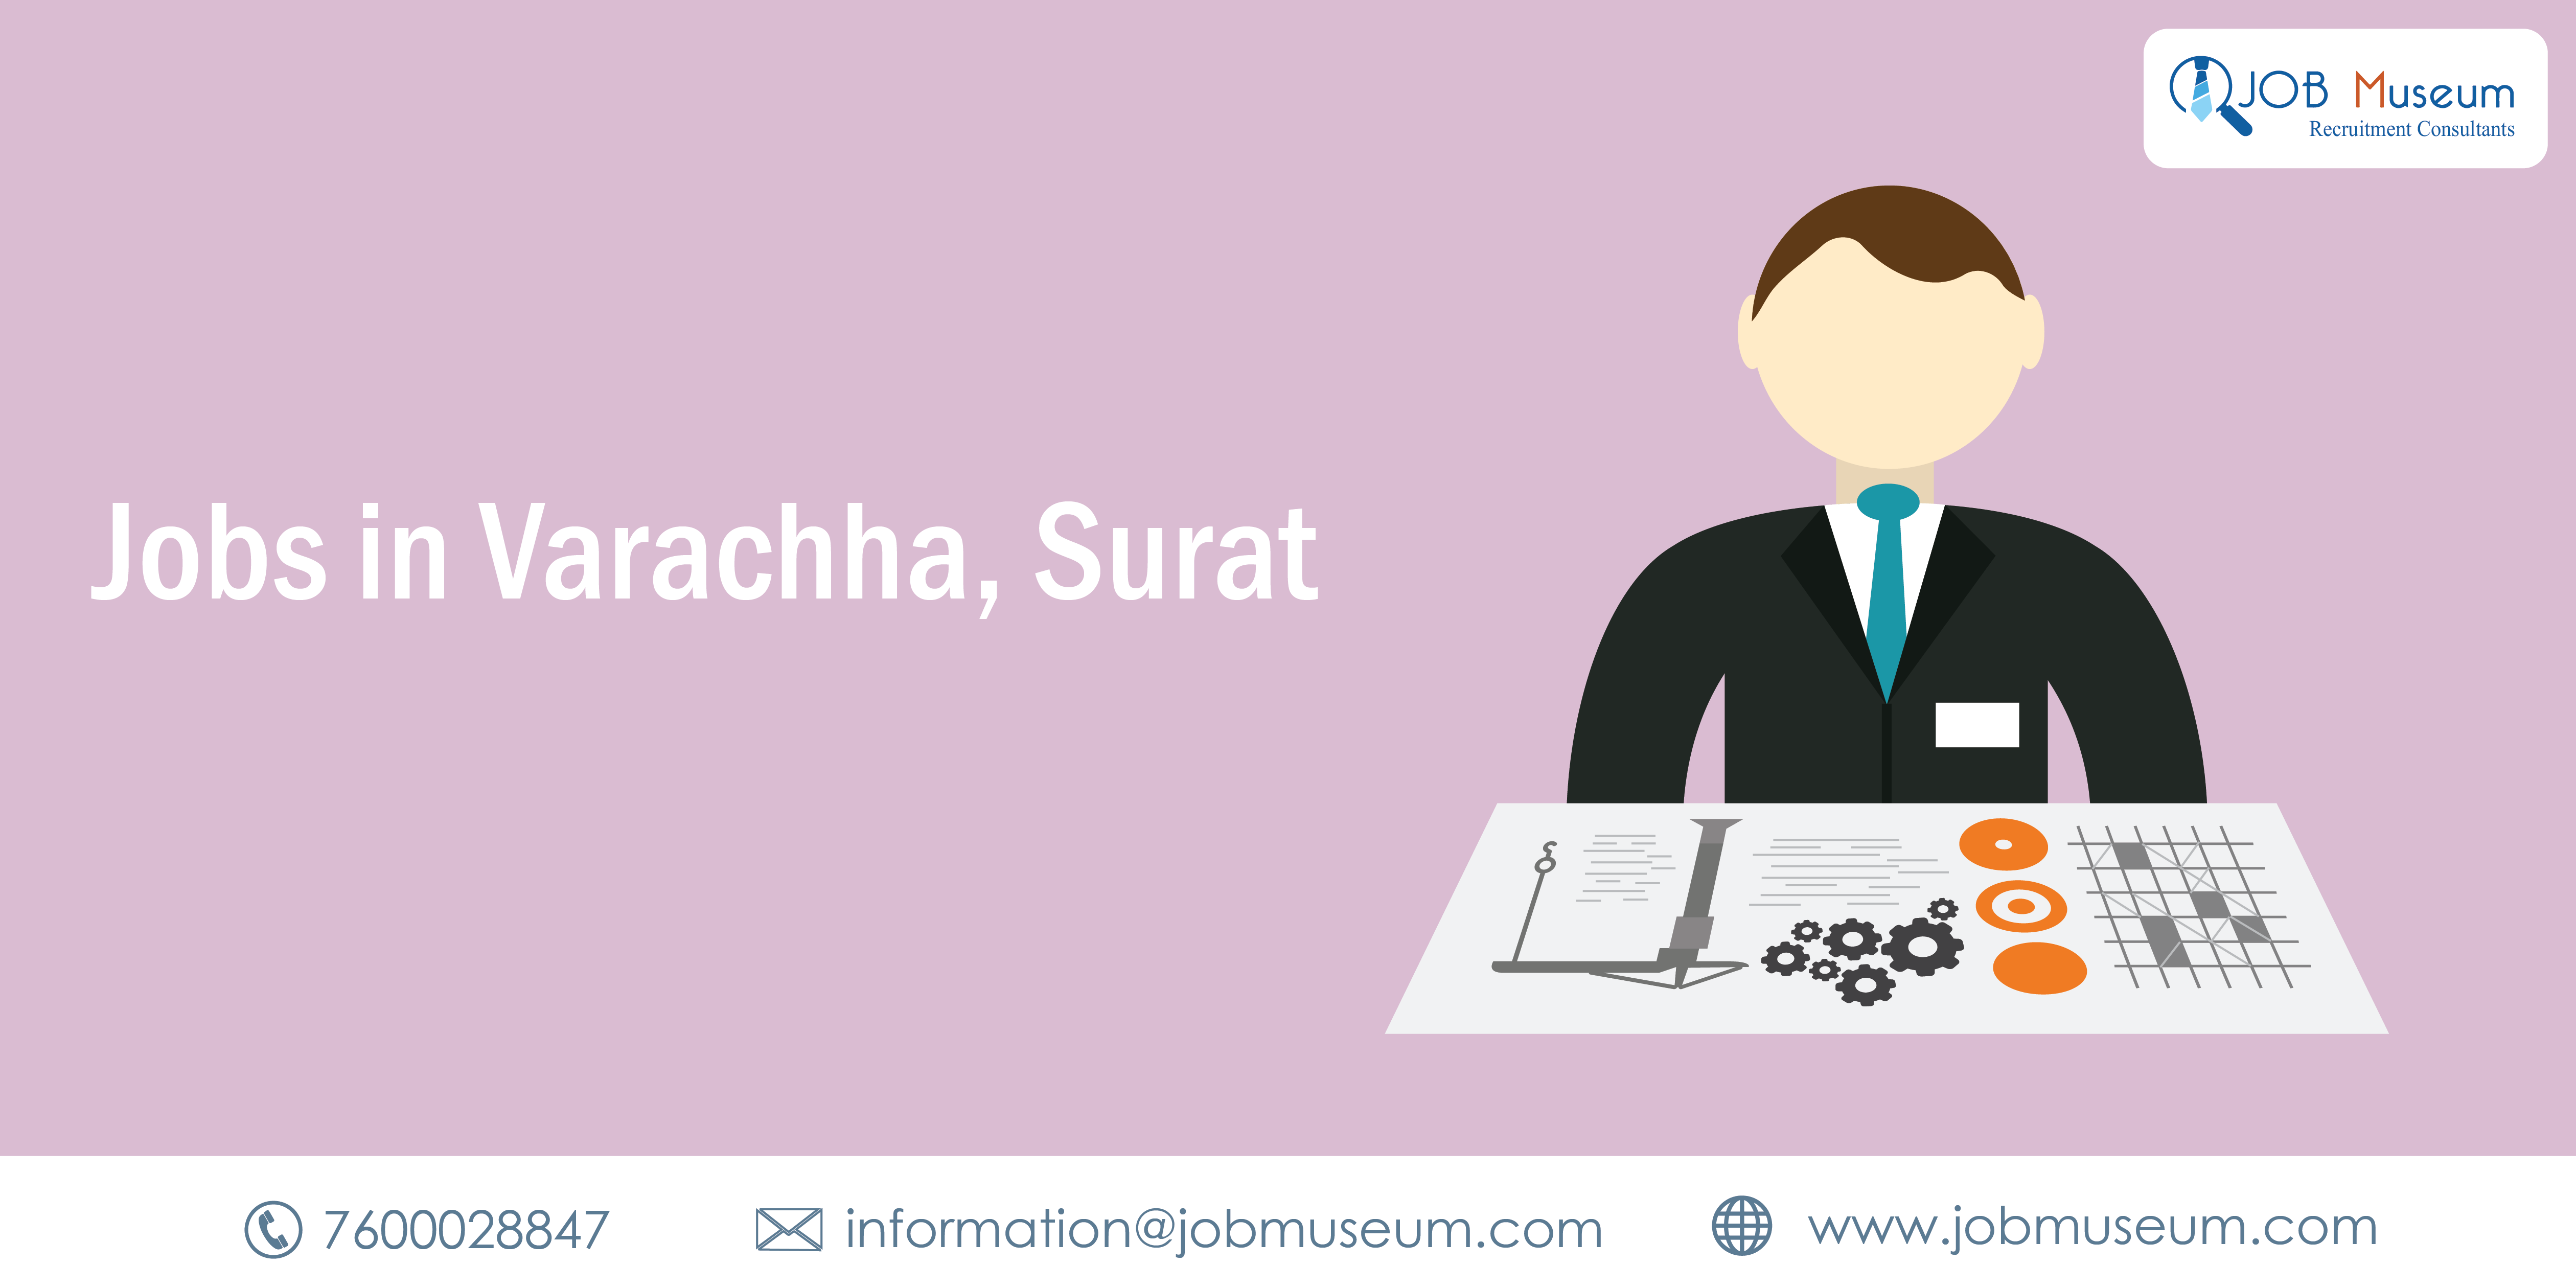 Jobs in Varachha Surat